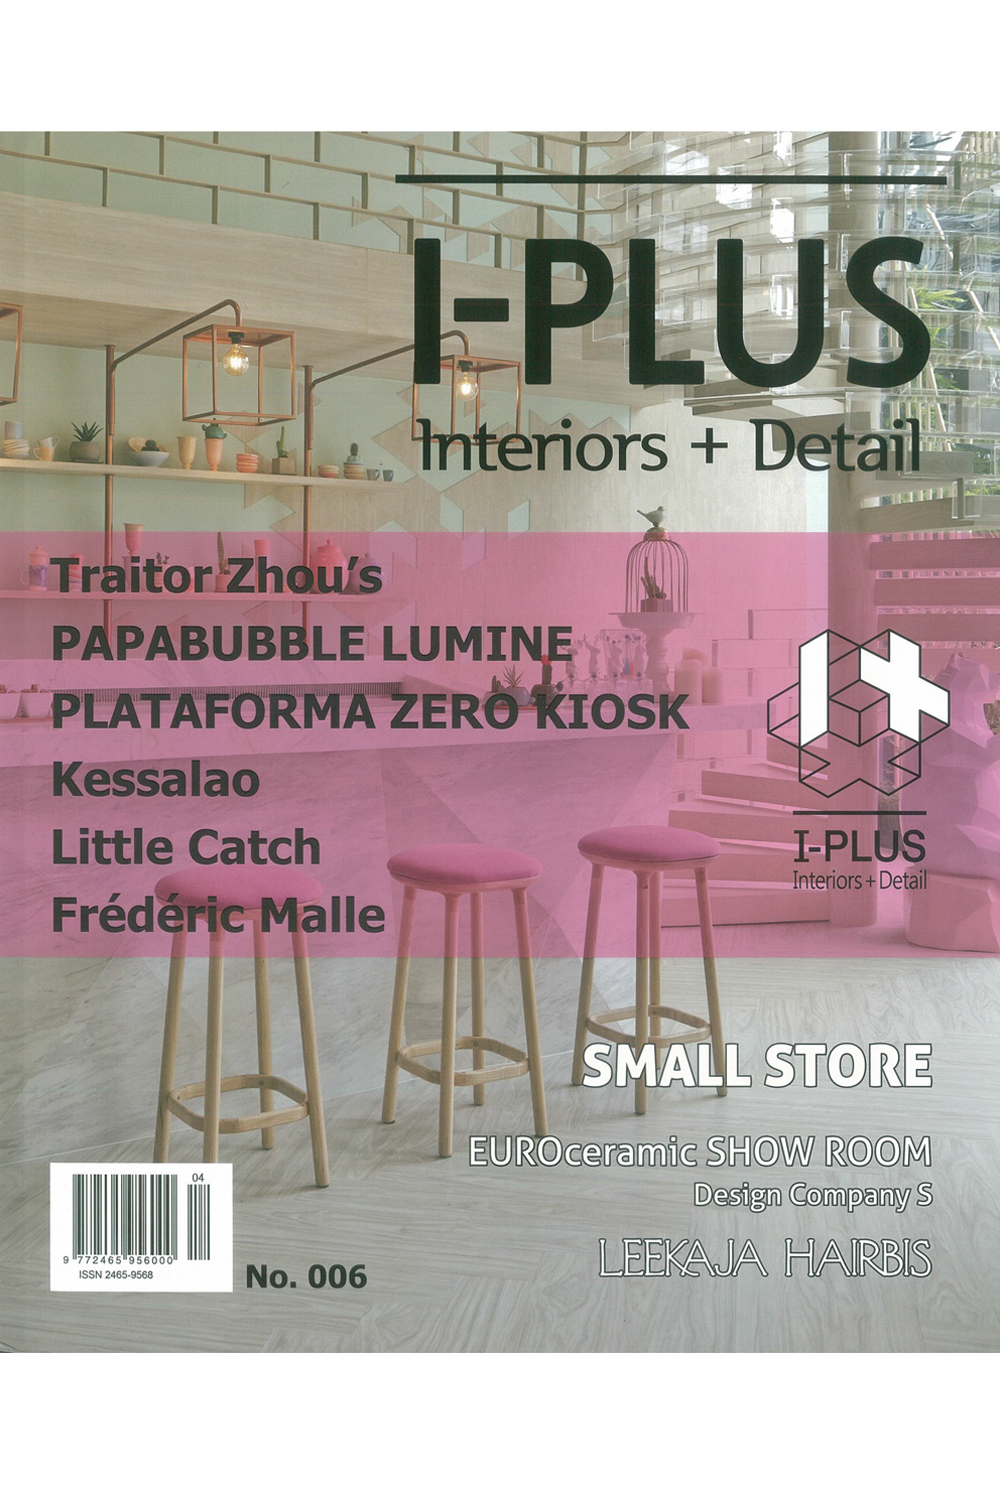 I-plus, Little Catch, April 2016